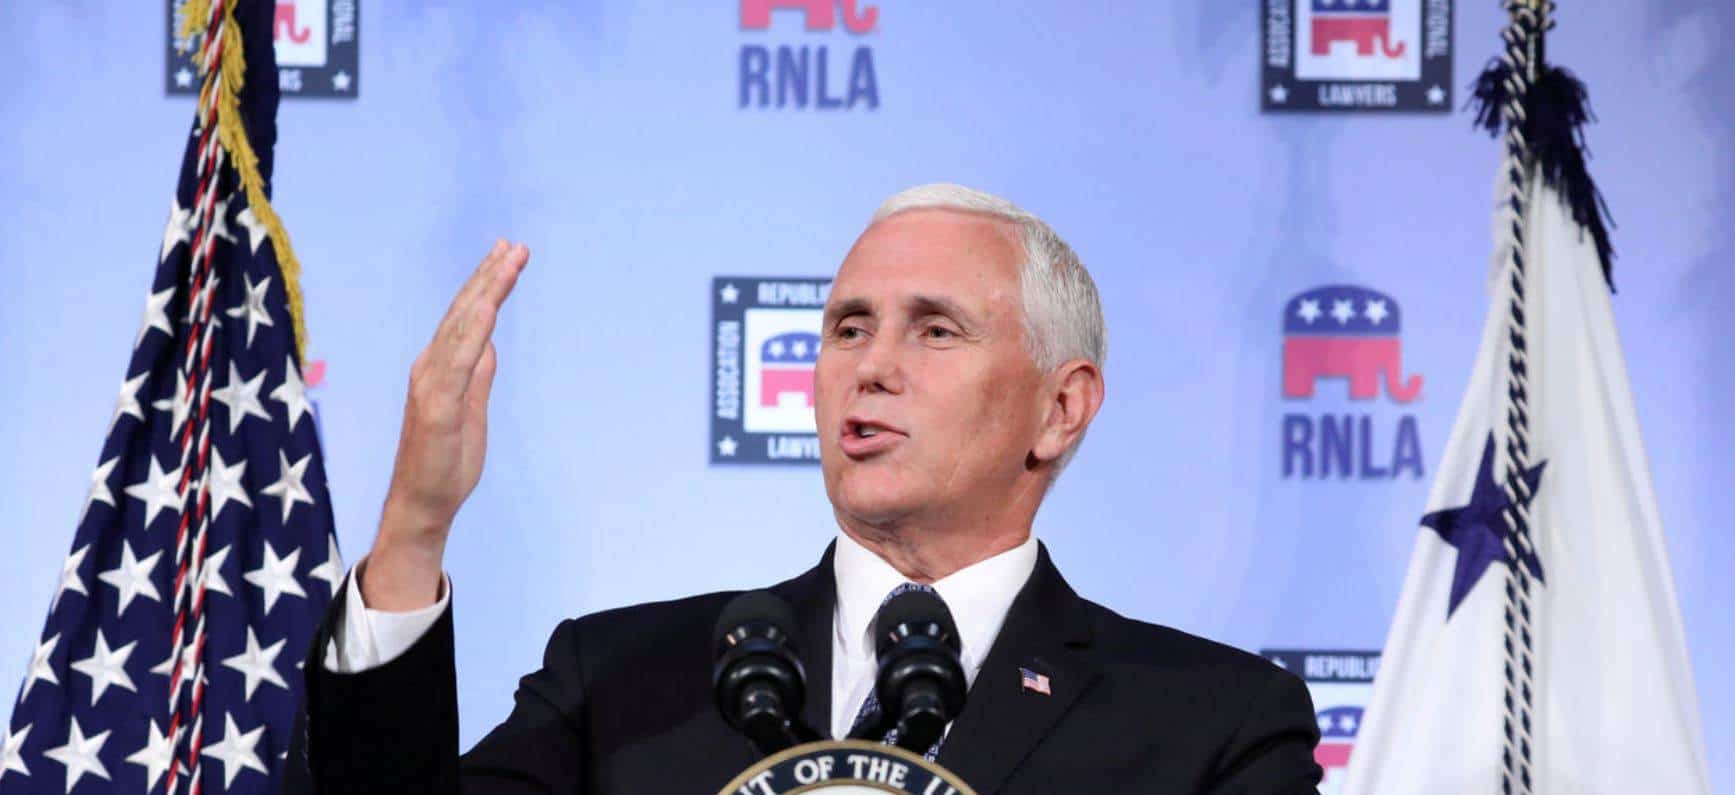 No vengan, dice Mike Pence a inmigrantes indocumentados